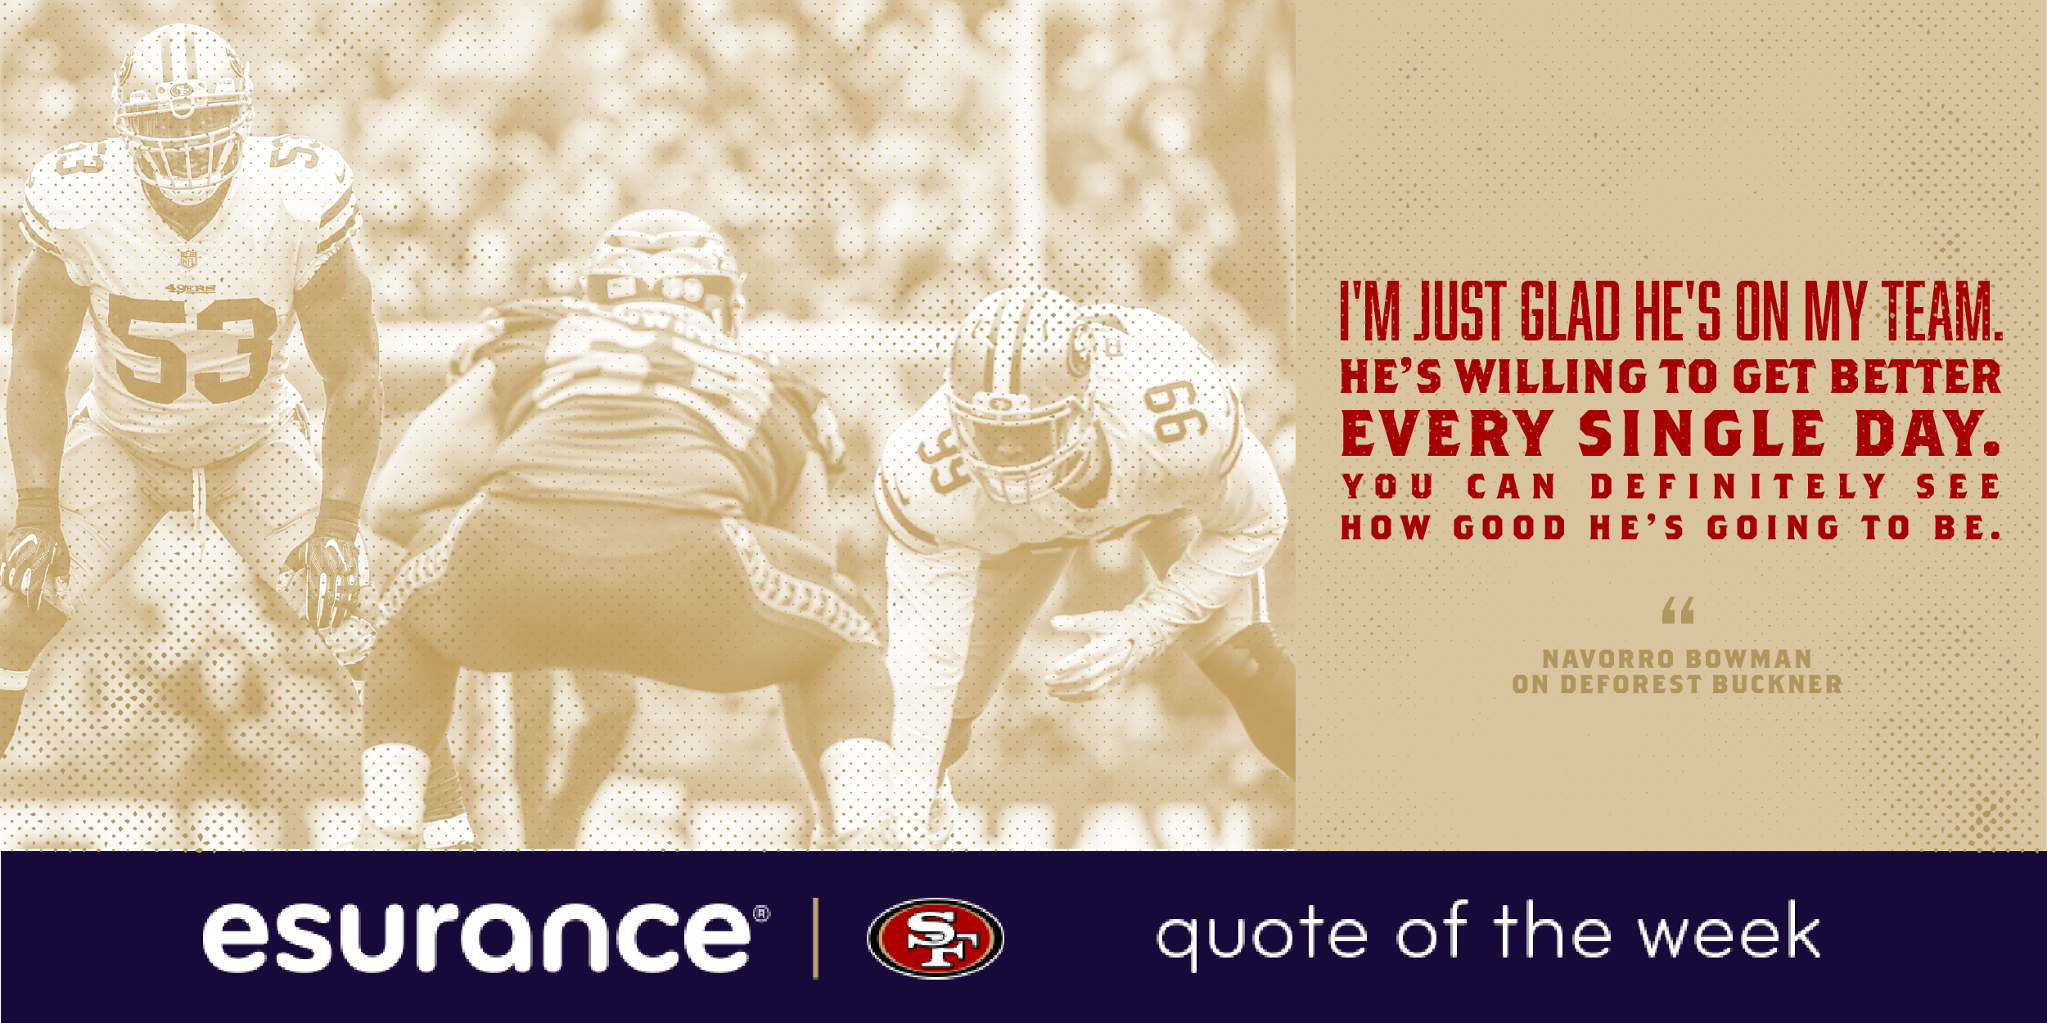 ���� @NBowman53 with the @esurance Quote of the Week on @DeForestBuckner ���� https://t.co/4OcUMdo9Dw